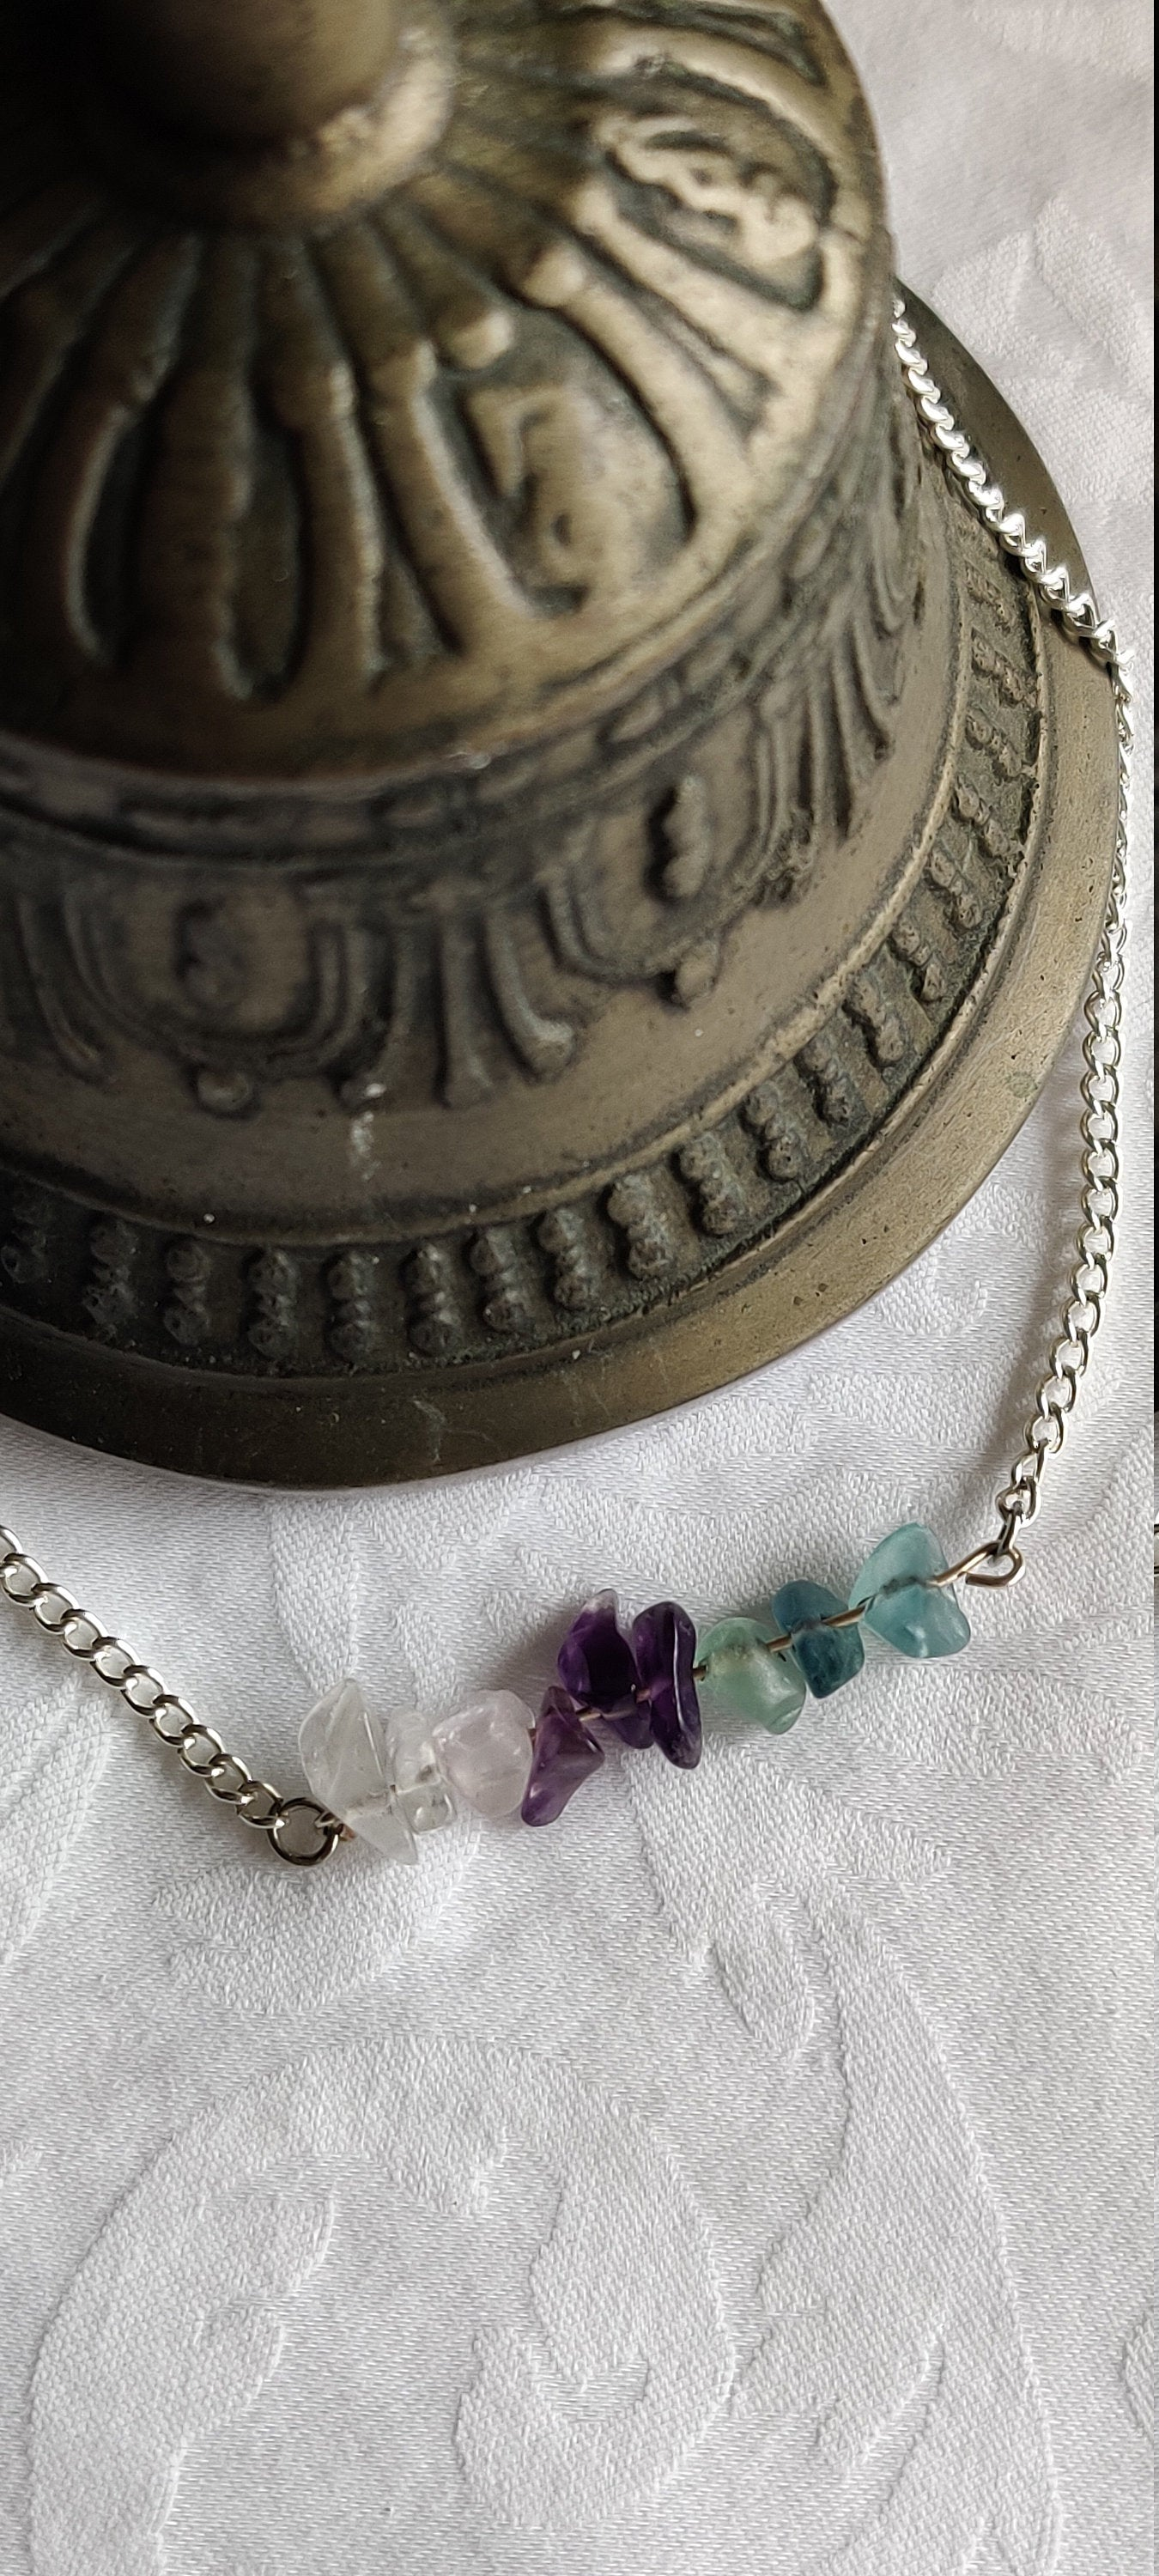 Healing Crystals, Yoga jewelry, Minimalist,, Gifts for her, Quartz, Aventurine, Amethyst